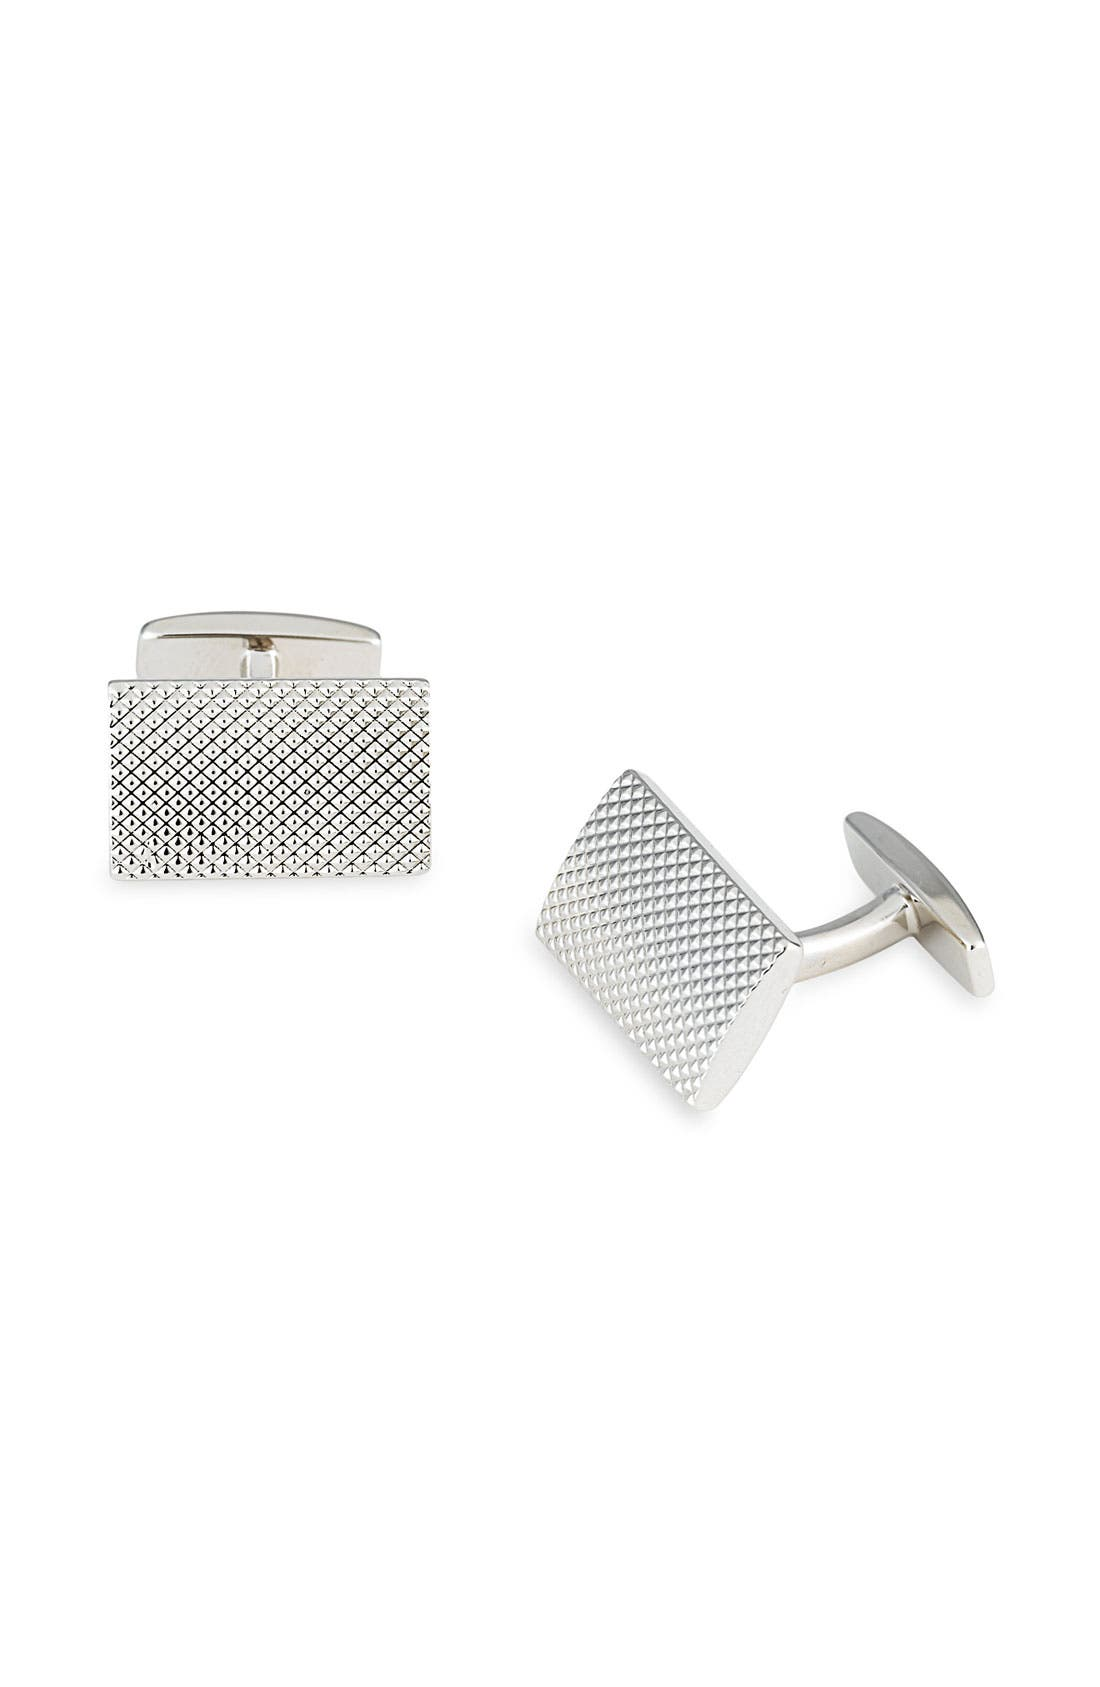 Alternate Image 1 Selected - BOSS Black 'Layden' Cuff Links